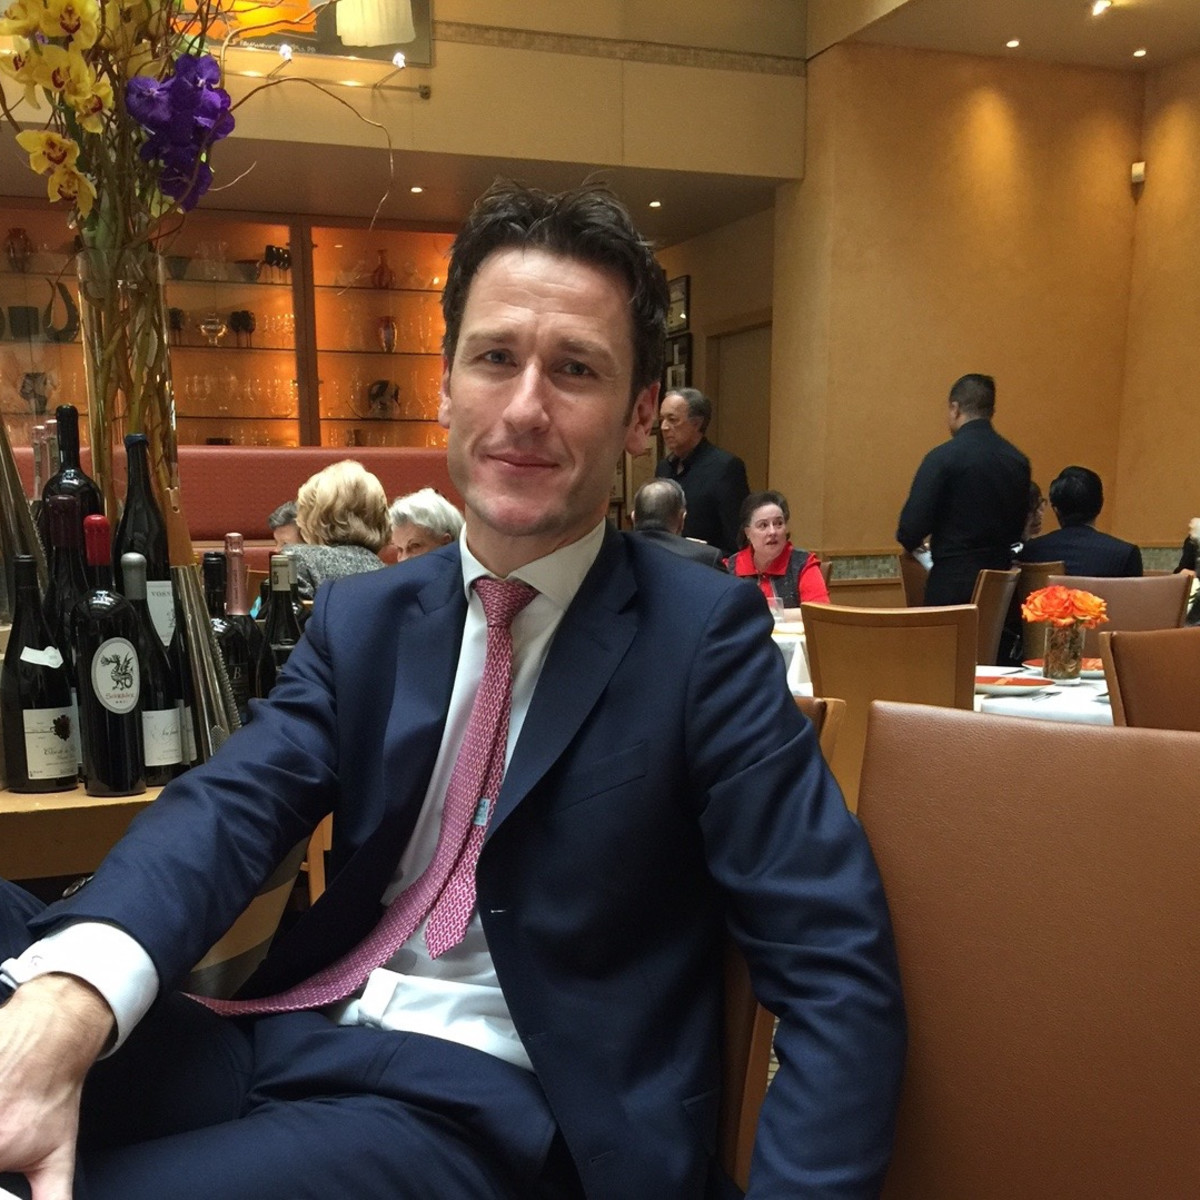 News, Ritz Hotel Paris, Christian Boyens, General Manager, Jan. 2016